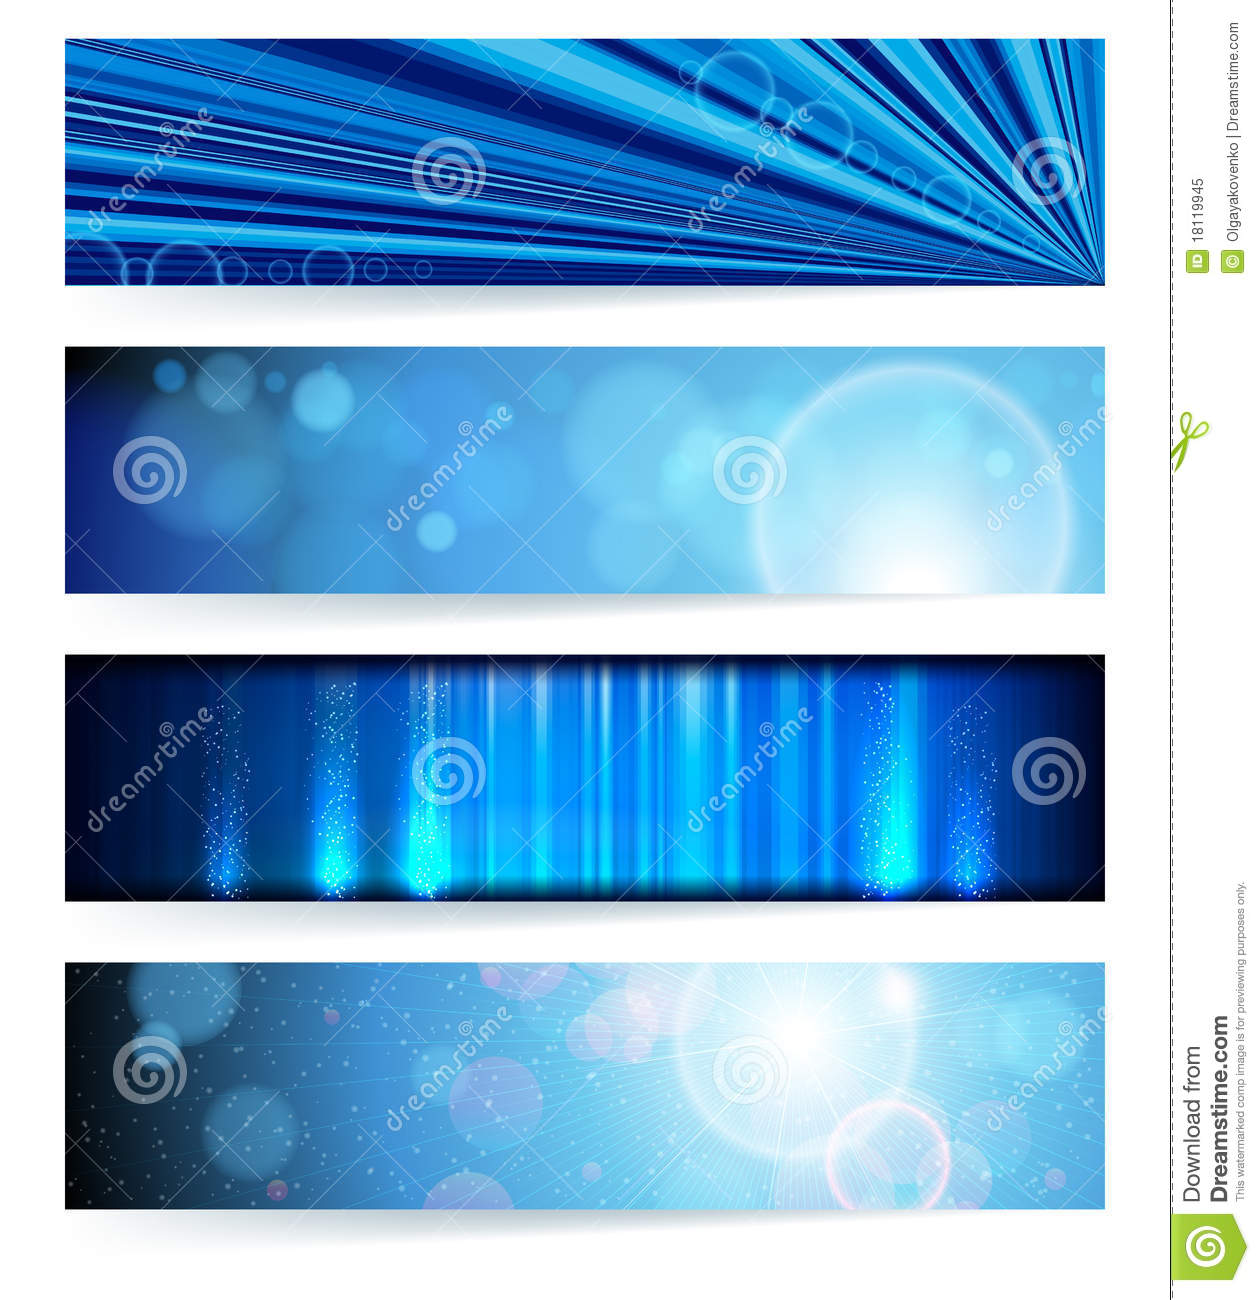 Set Of Abstract Banners. Blue Design. Royalty Free Stock Photo ...